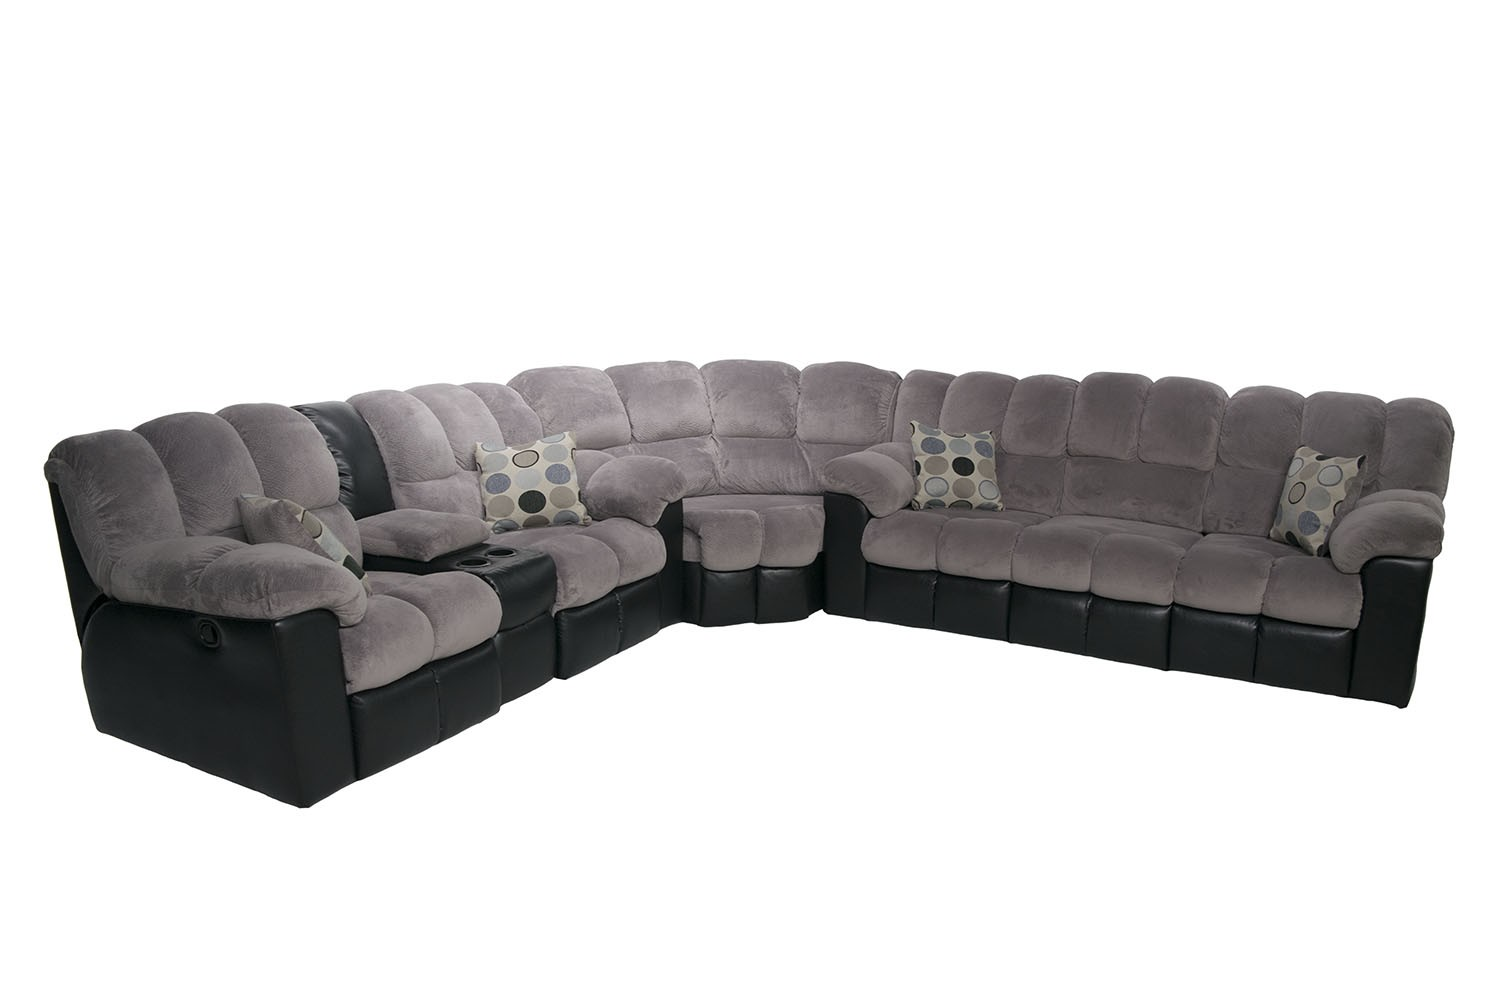 The Fountain Gray Living Room Collection | Mor Furniture for Less